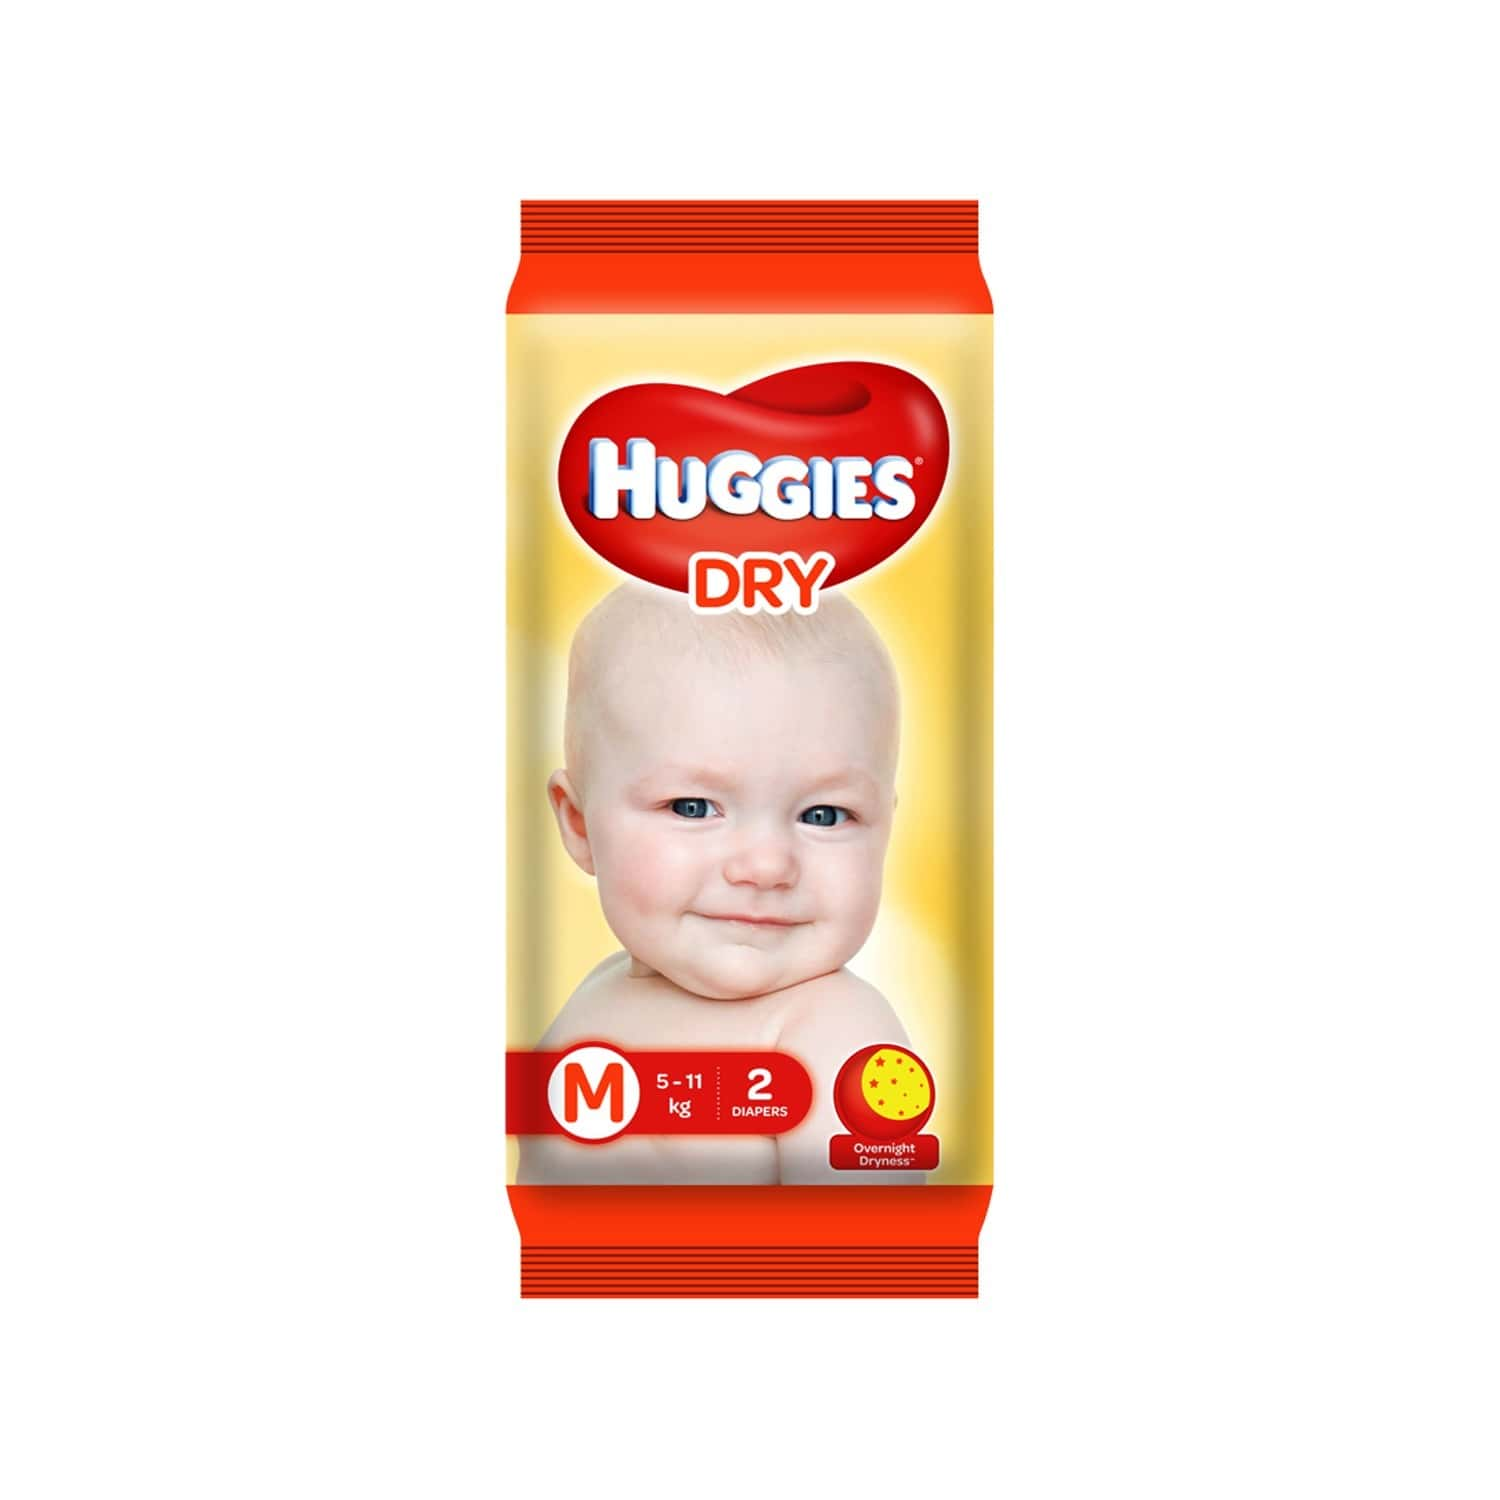 Huggies Dry Tape Diapers ( Medium Size) - 2 Count